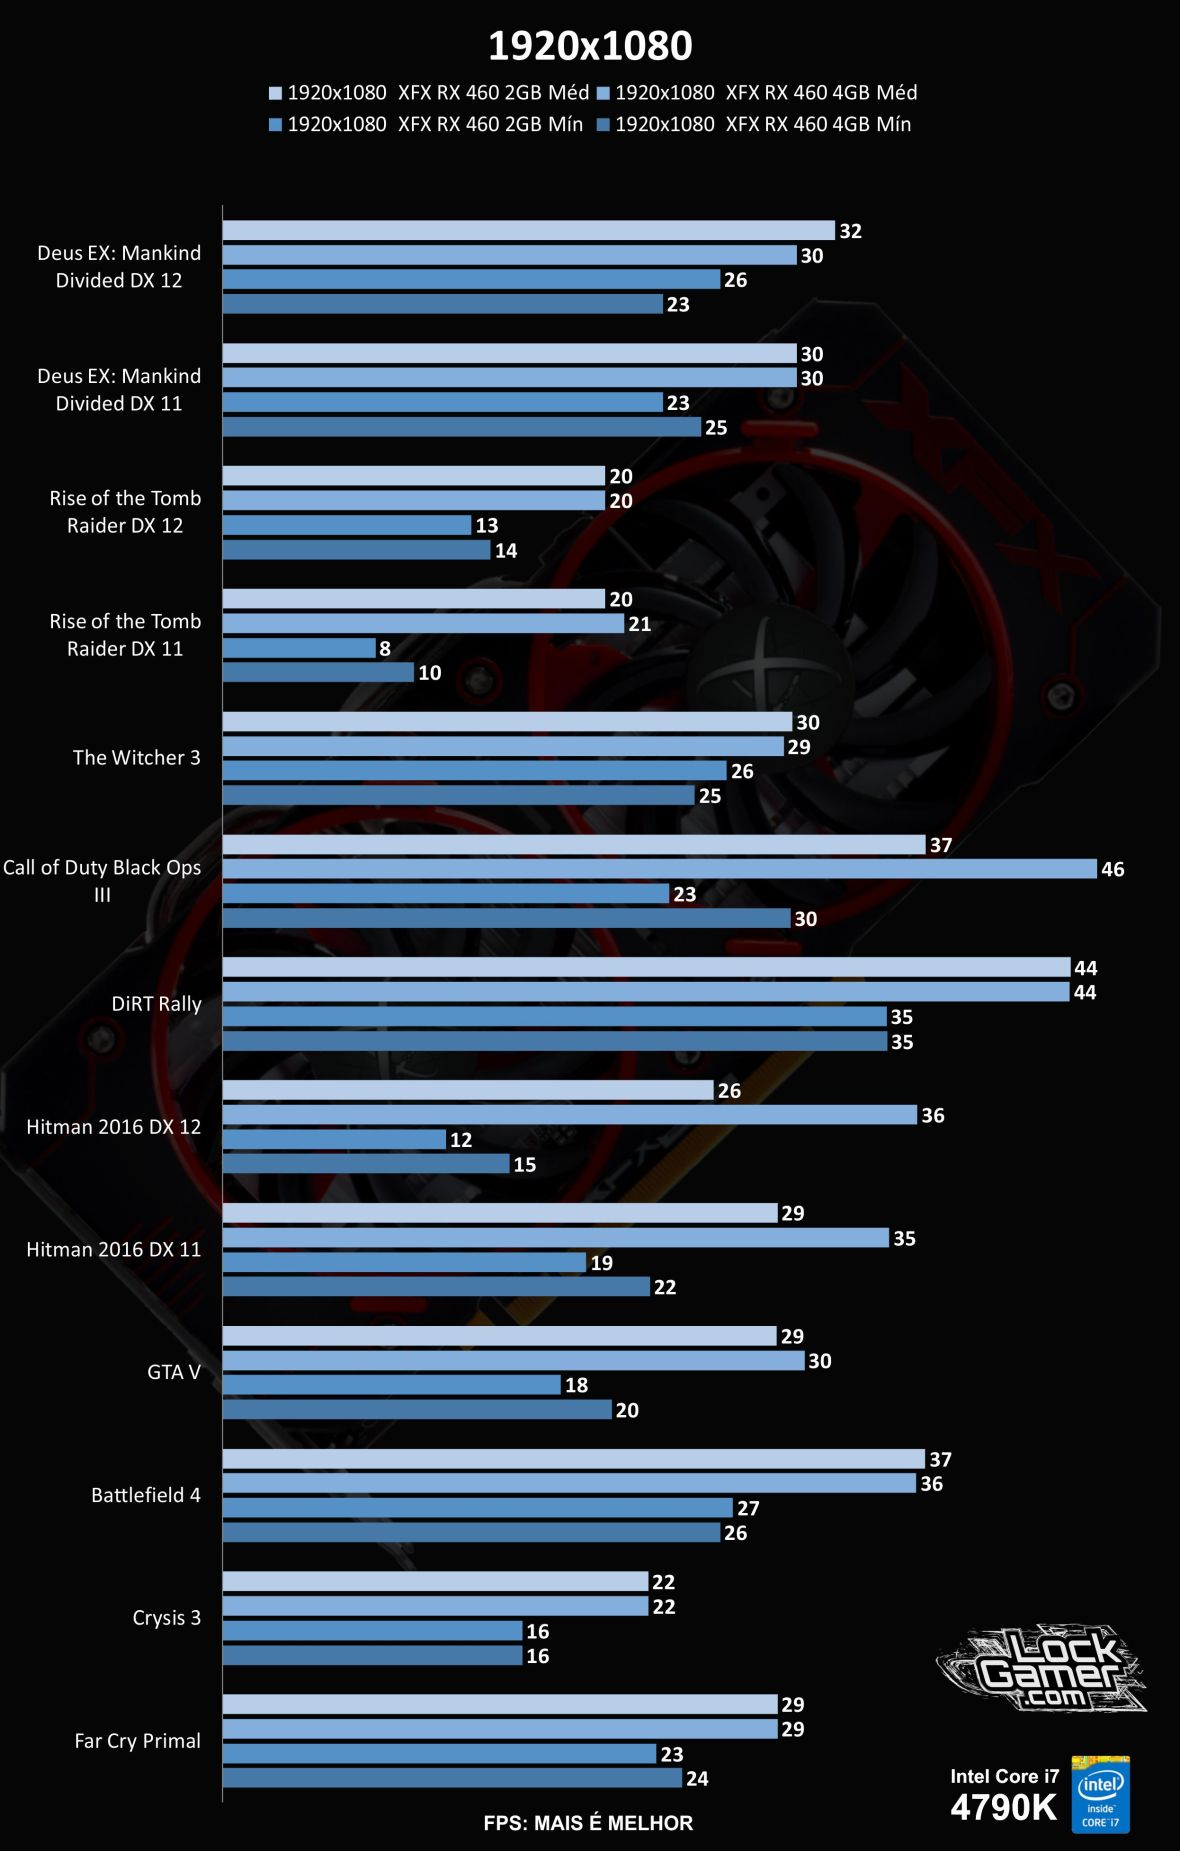 benchmark-rx-460-comparativo-2gb-vs-4gb-1920x1080